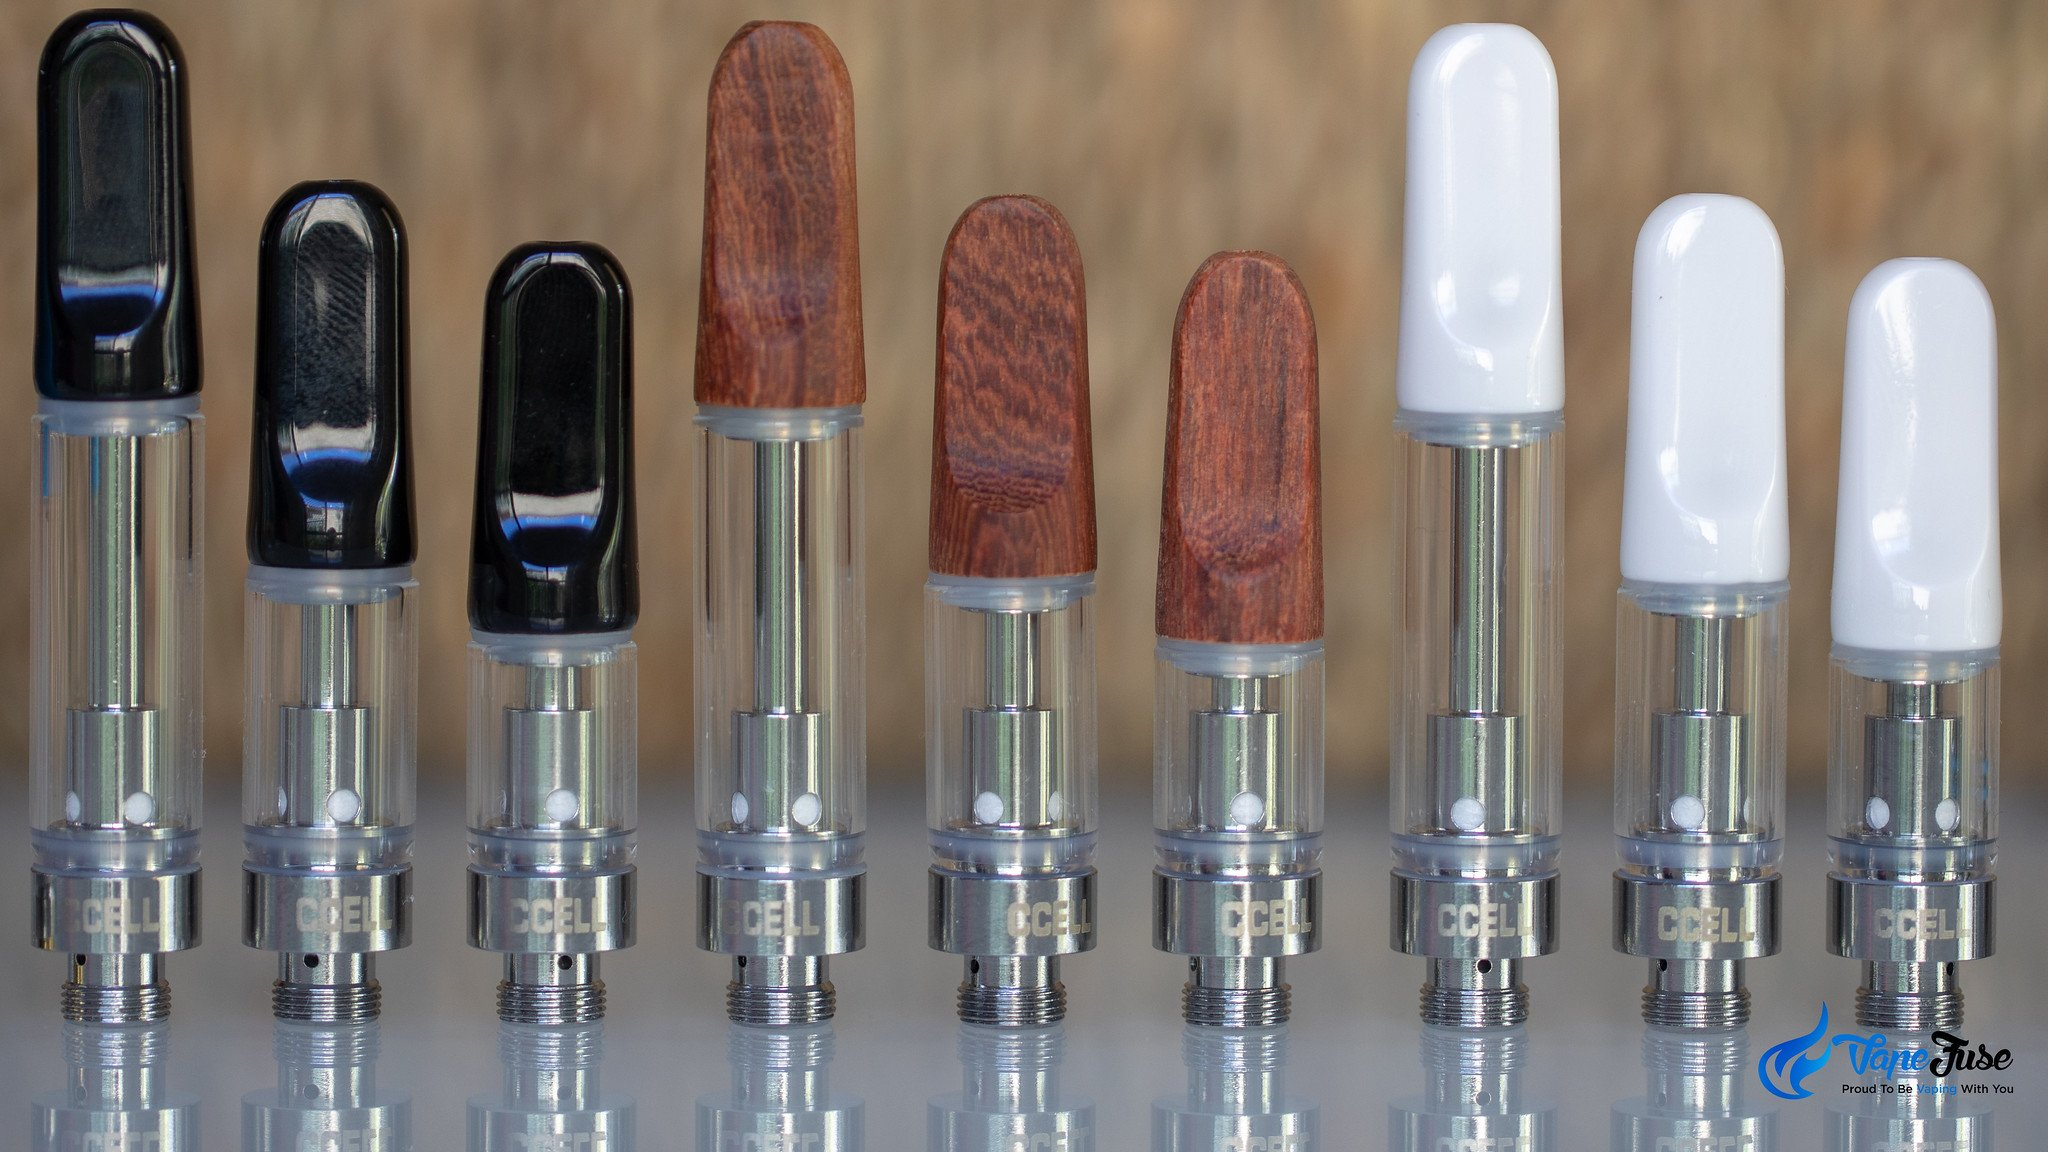 CCell TH2 Oil Cartridge Review